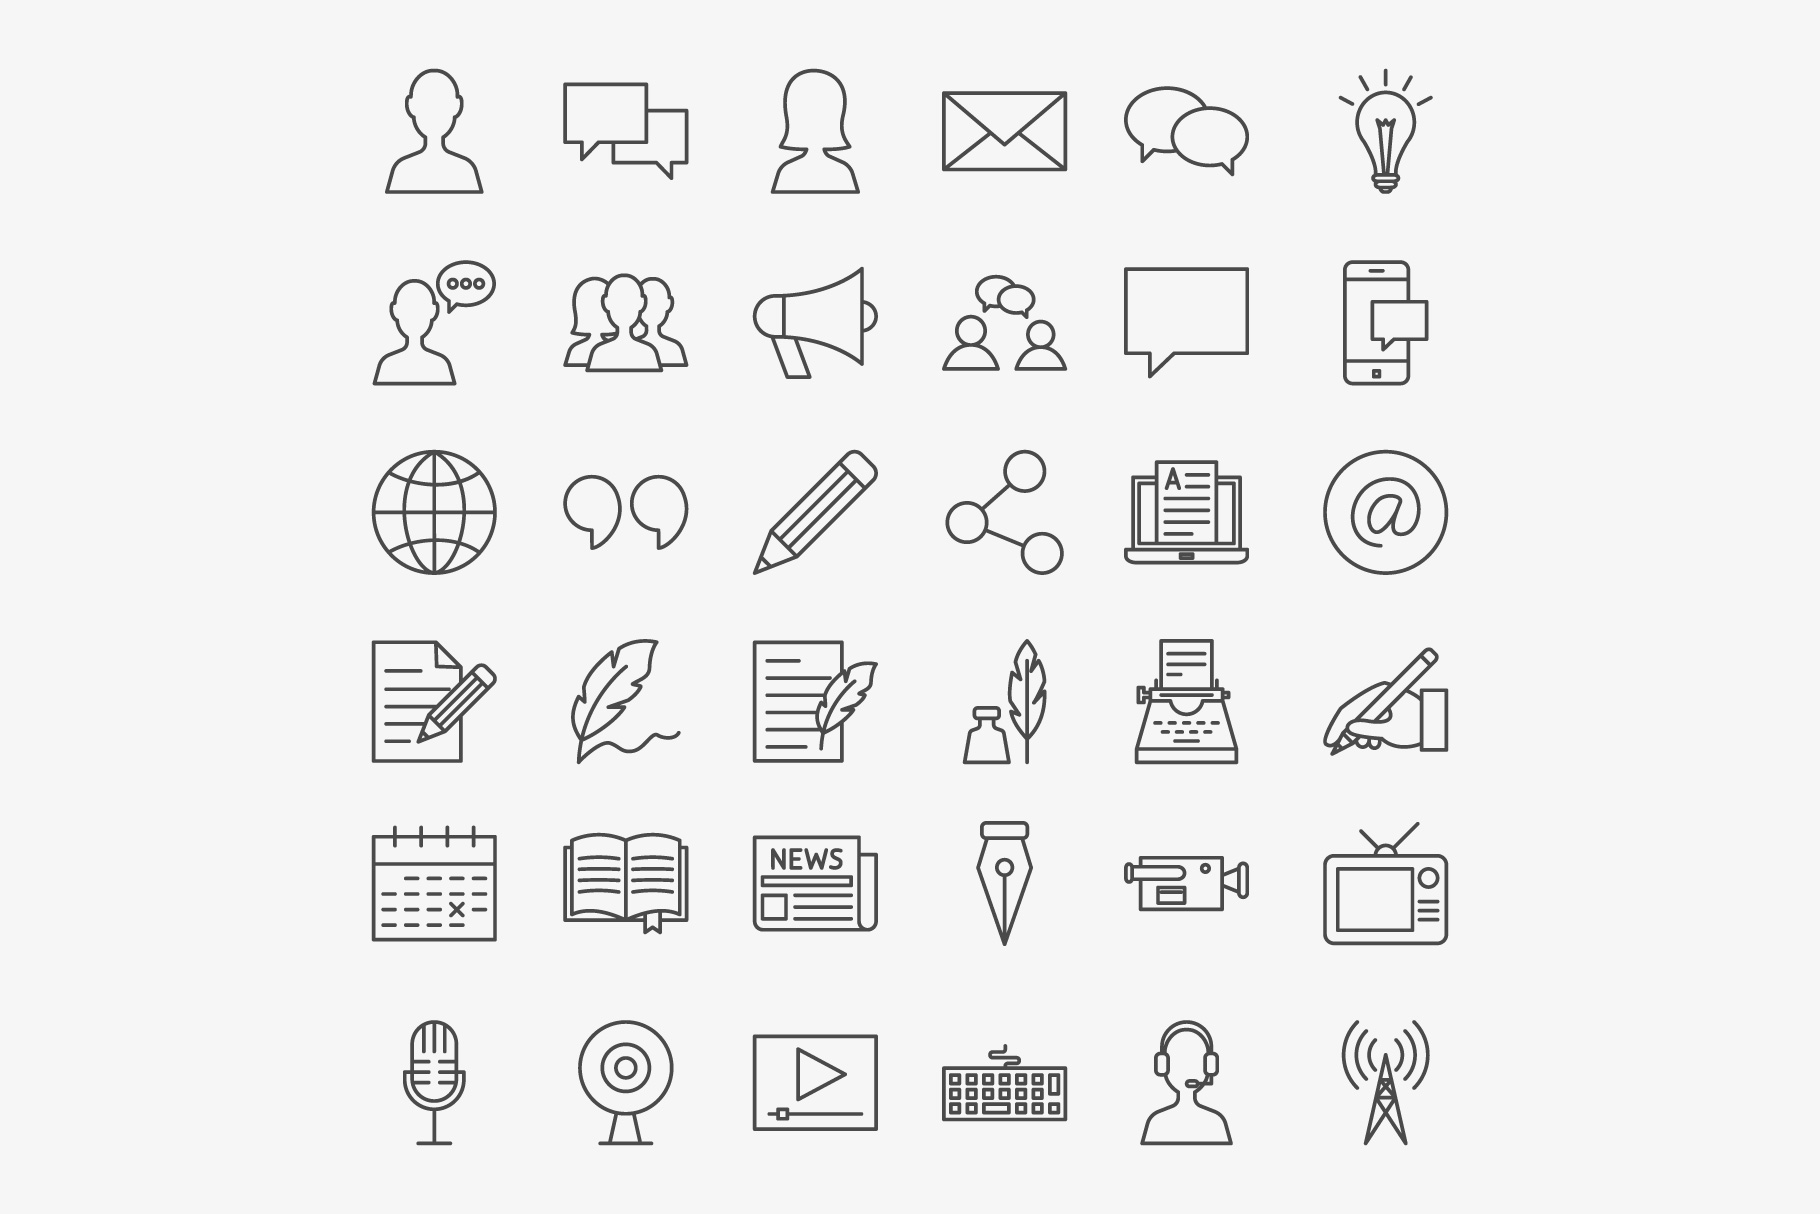 Blog Line Art Icons example image 3